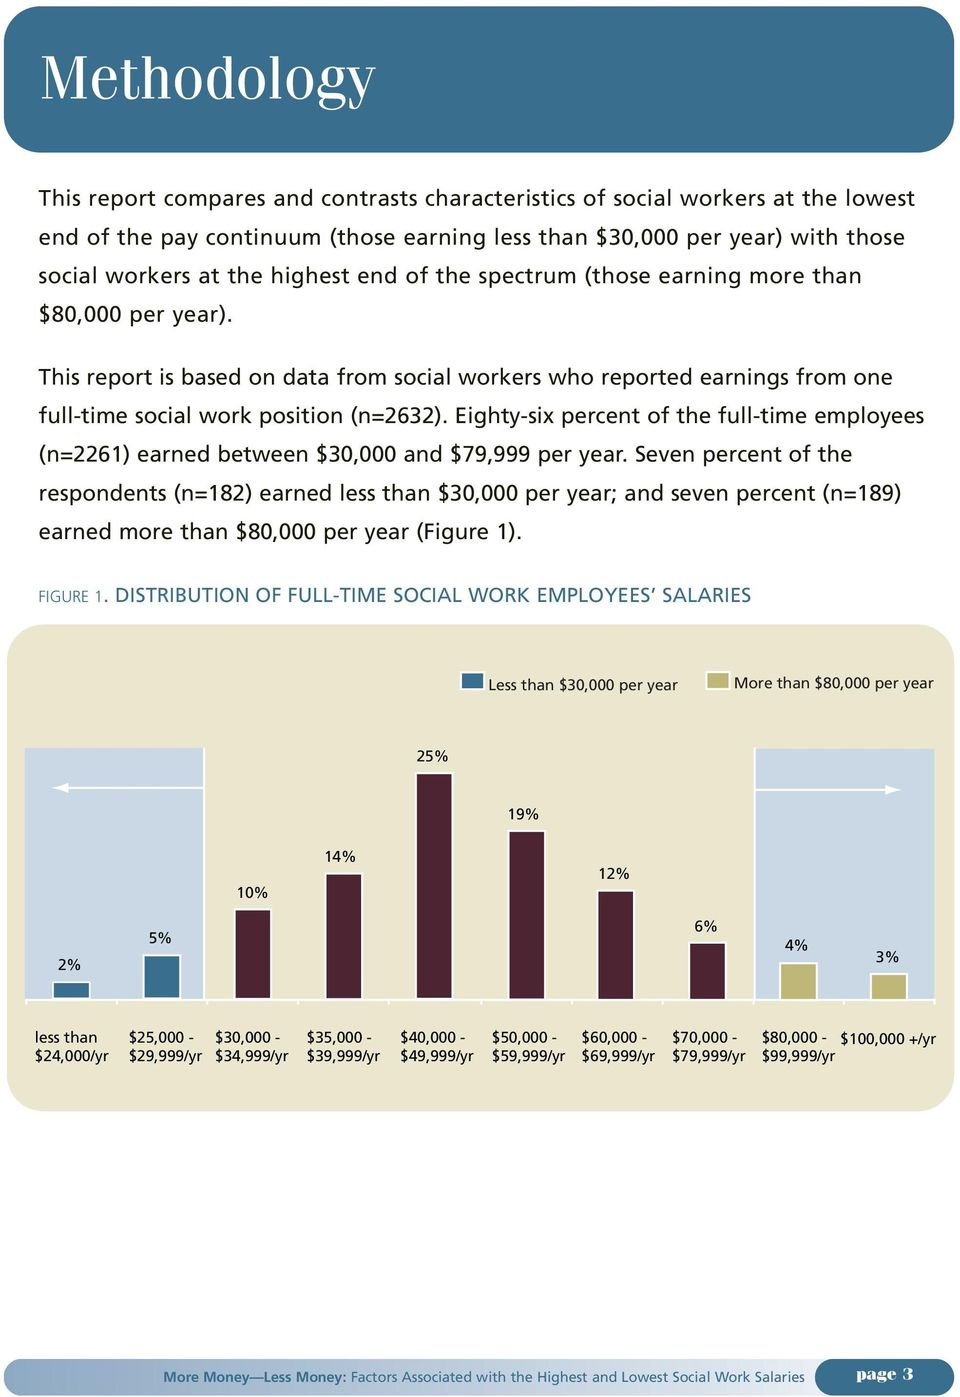 Eighty-six percent of the full-time employees (n=2261) earned between $30,000 and $79,999 per year.